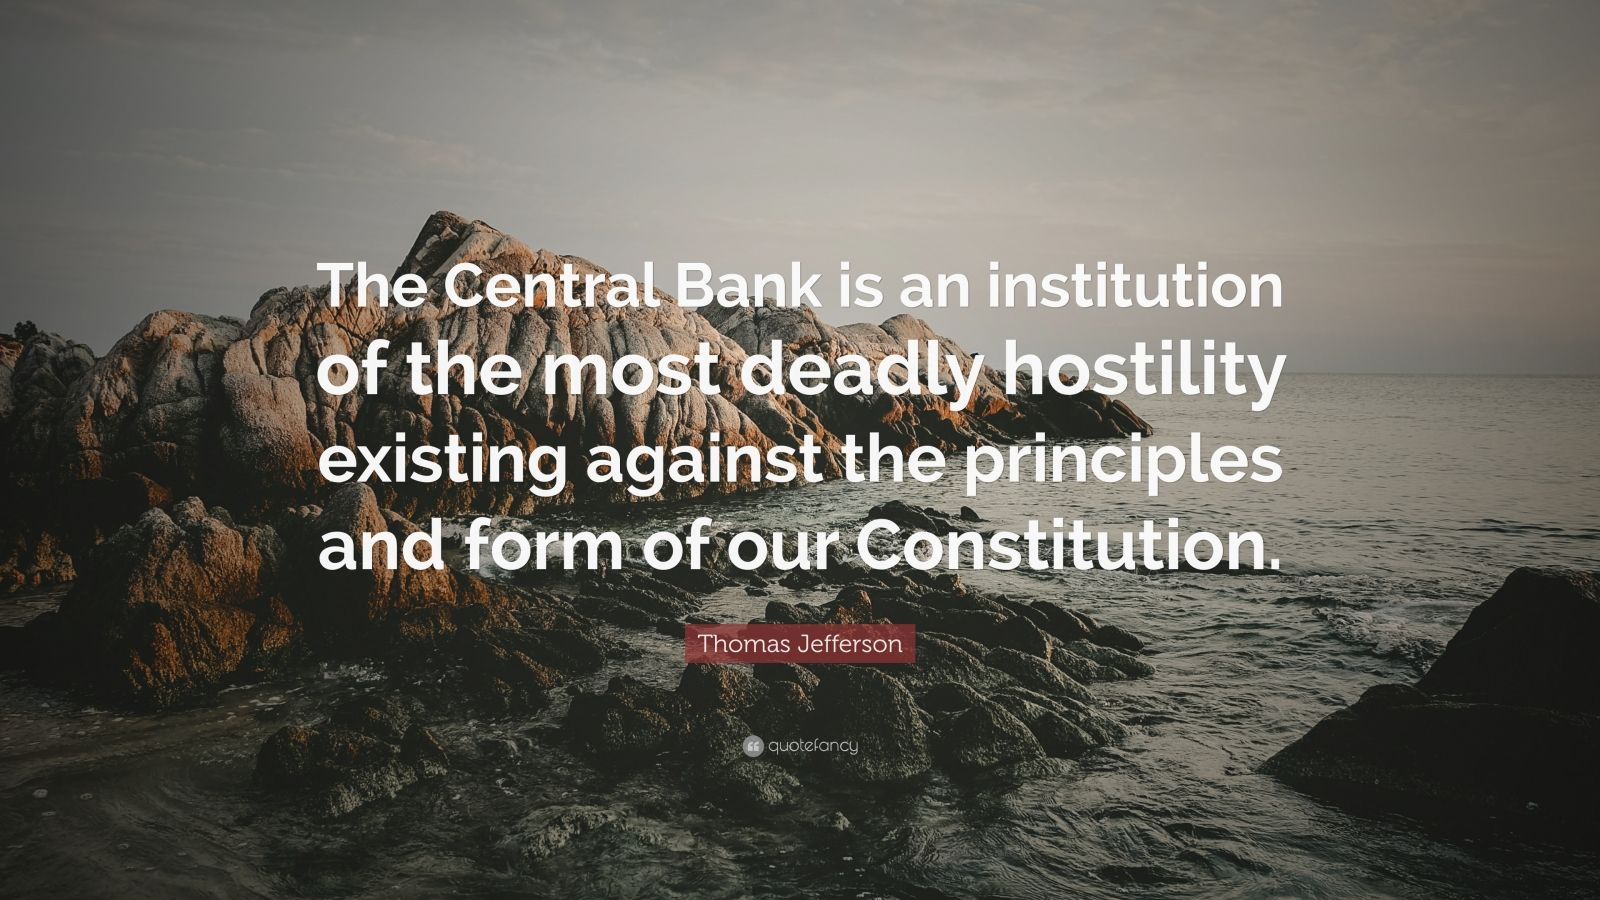 """Thomas Jefferson Quote: """"The Central Bank is an institution of the most deadly hostility existing against the principles and form of our Constitution."""""""